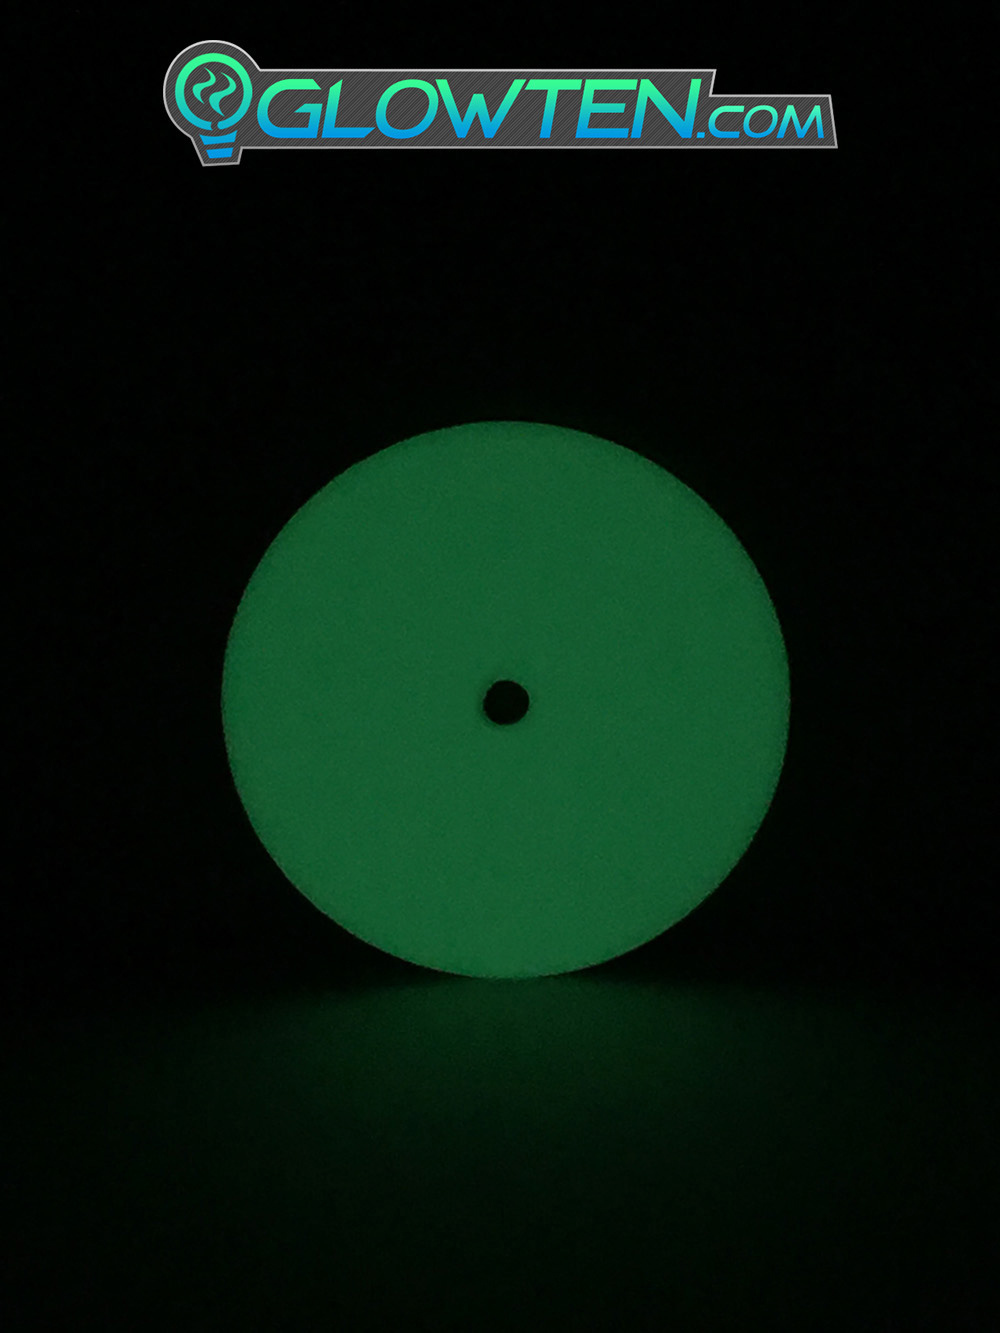 GLOWTEN.com - Dimly Lit Areas, Alley Ways, Rural Areas, Glow In The Dark Safety Signs Round Point Circle Glow In The Dark Sign Light Guide Eco Friendly Traffic Marker Photoluminescent Aluminum Body Material, Any Poles picture photo cap preview pic image search 2